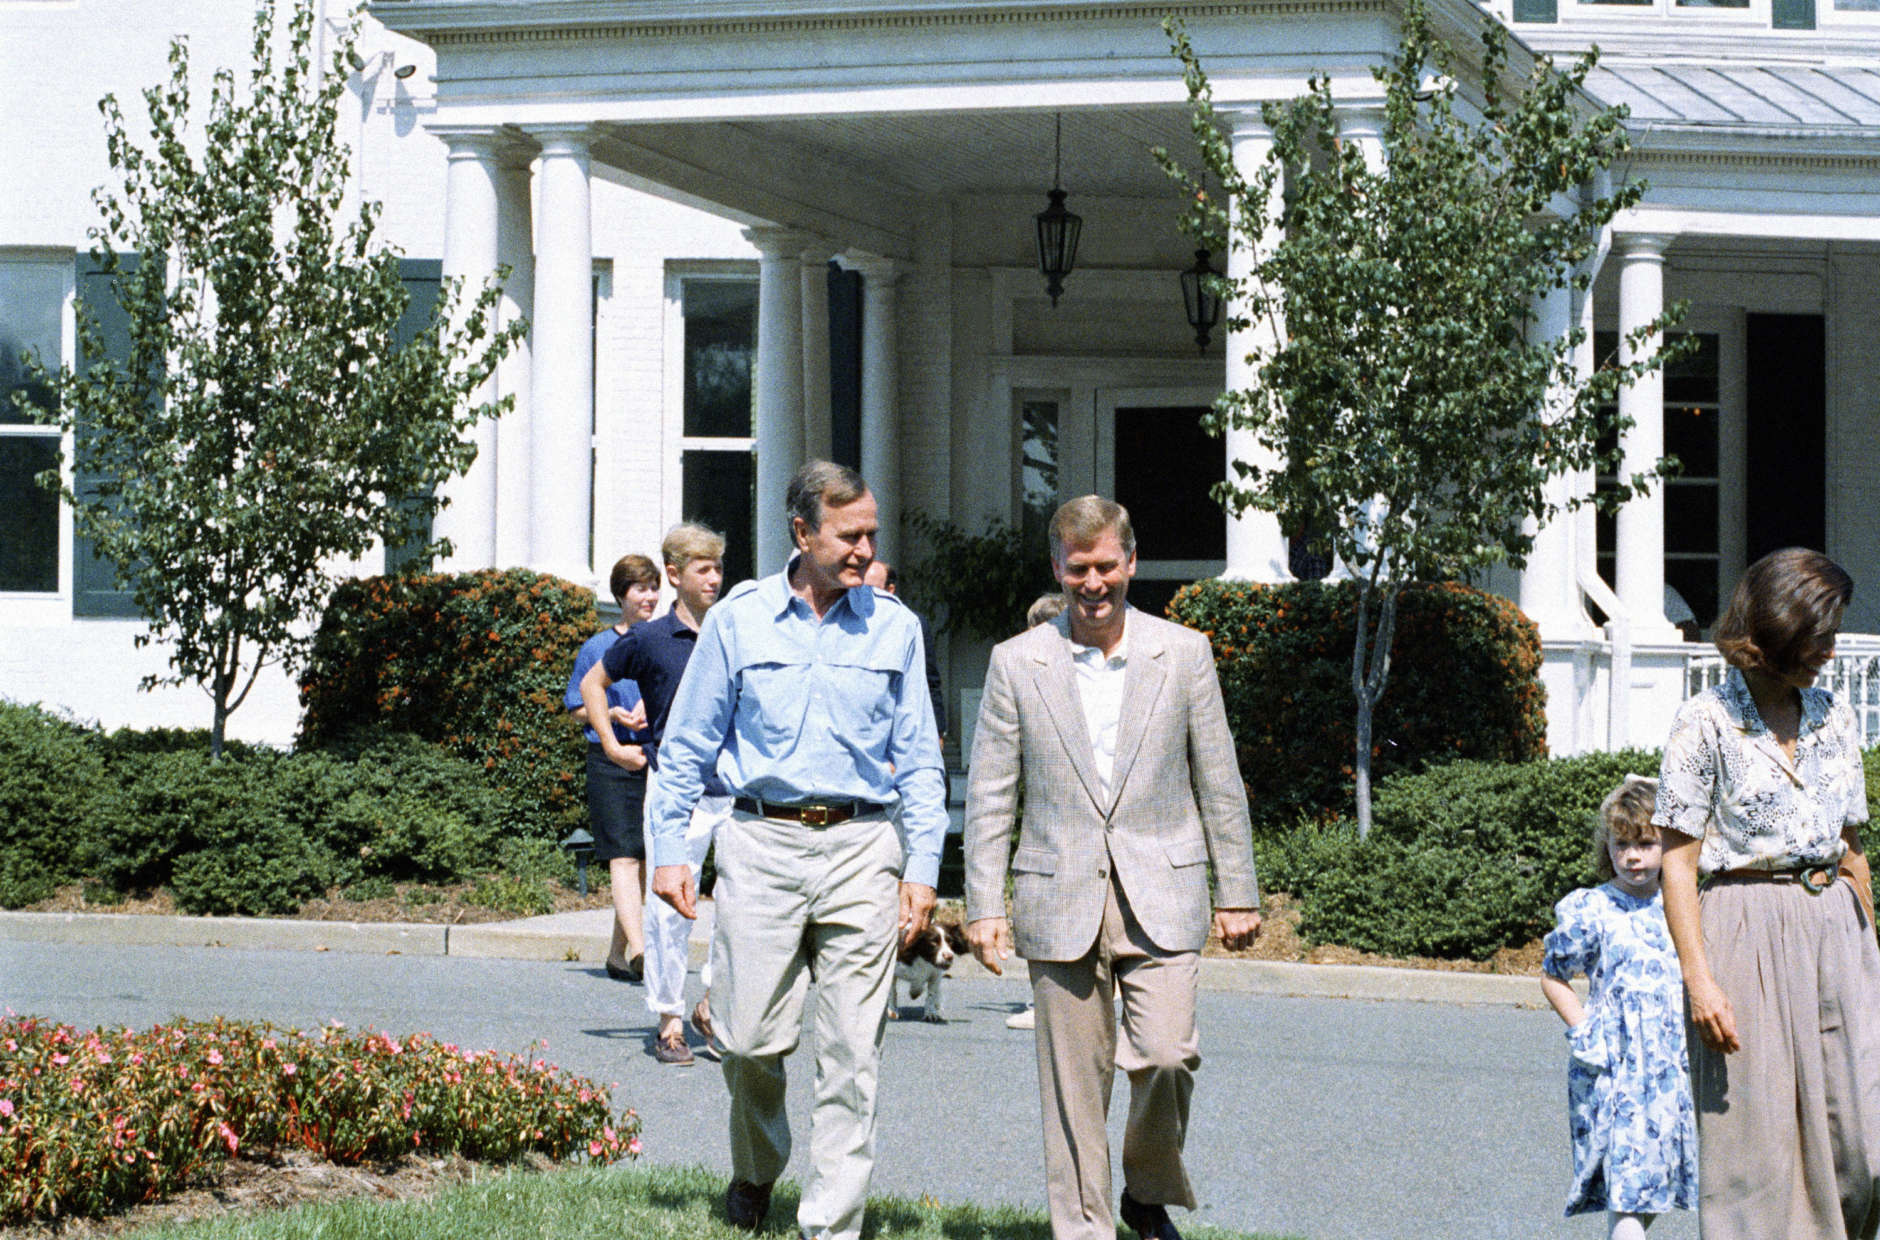 Vice President George Bush, left, walks with his running Sen. Dan Quayle of Indiana, prior to a lunch Bush gave for Quayle and their families at the vice president's residence in Washington on Sept. 11, 1988. (AP Photo/Charles Tasnadi)